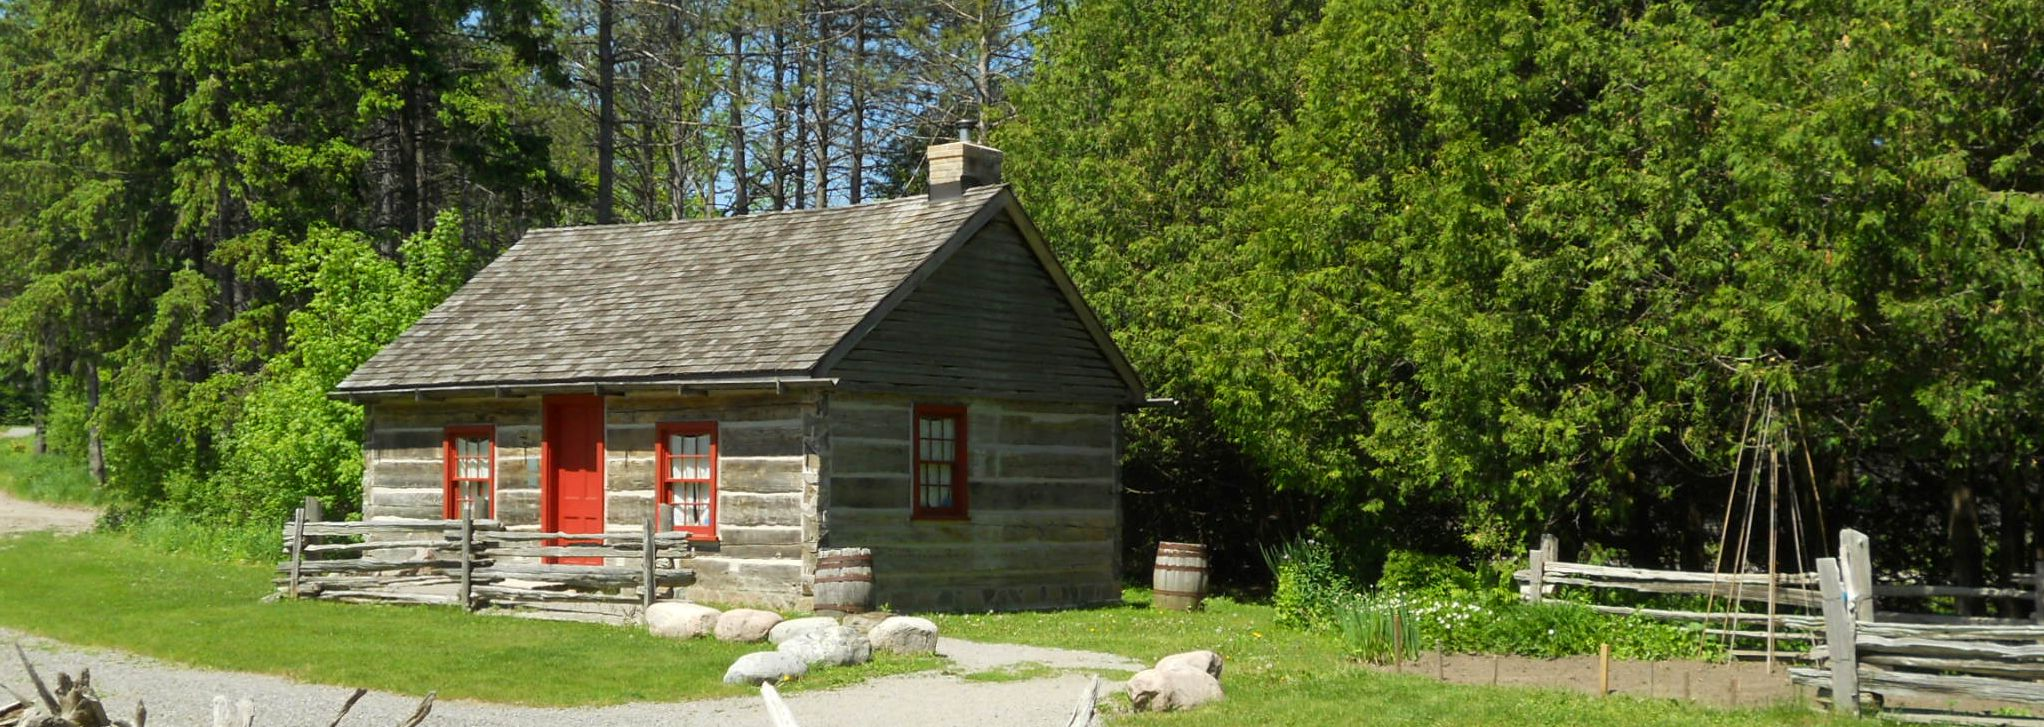 Image of log cabin on Museum grounds